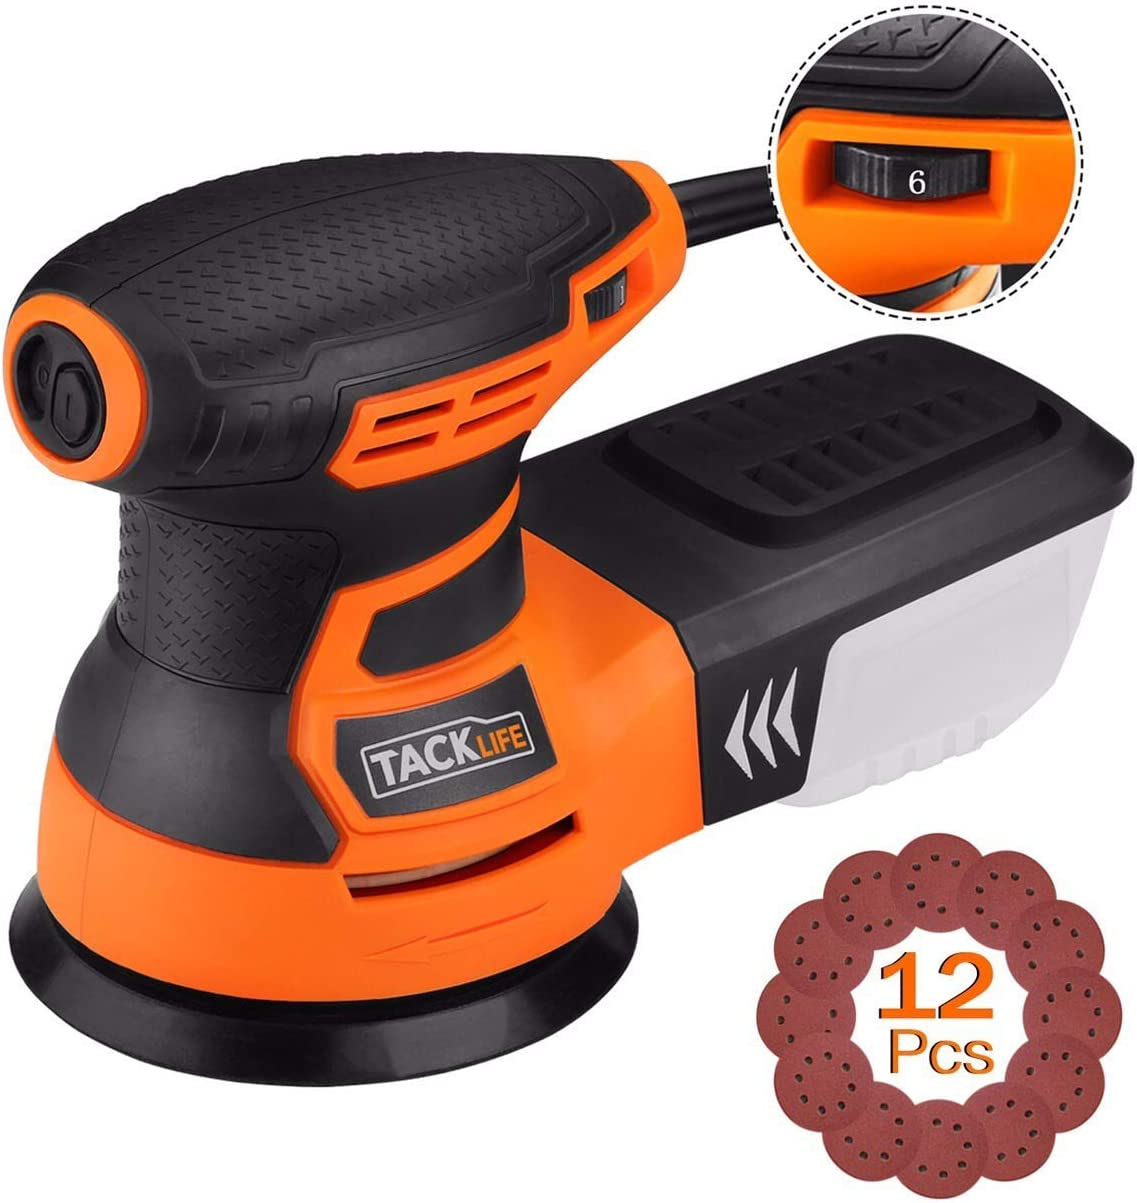 TACKLIFE Orbital Sander, 3.0A 5-Inch Random Orbit Sander with 12Pcs Sandpapers, 6 Variable Speed 13000RPM Electric Sander Machine, High Performance Dust Collection System, Ideal for DIY – PRS01A